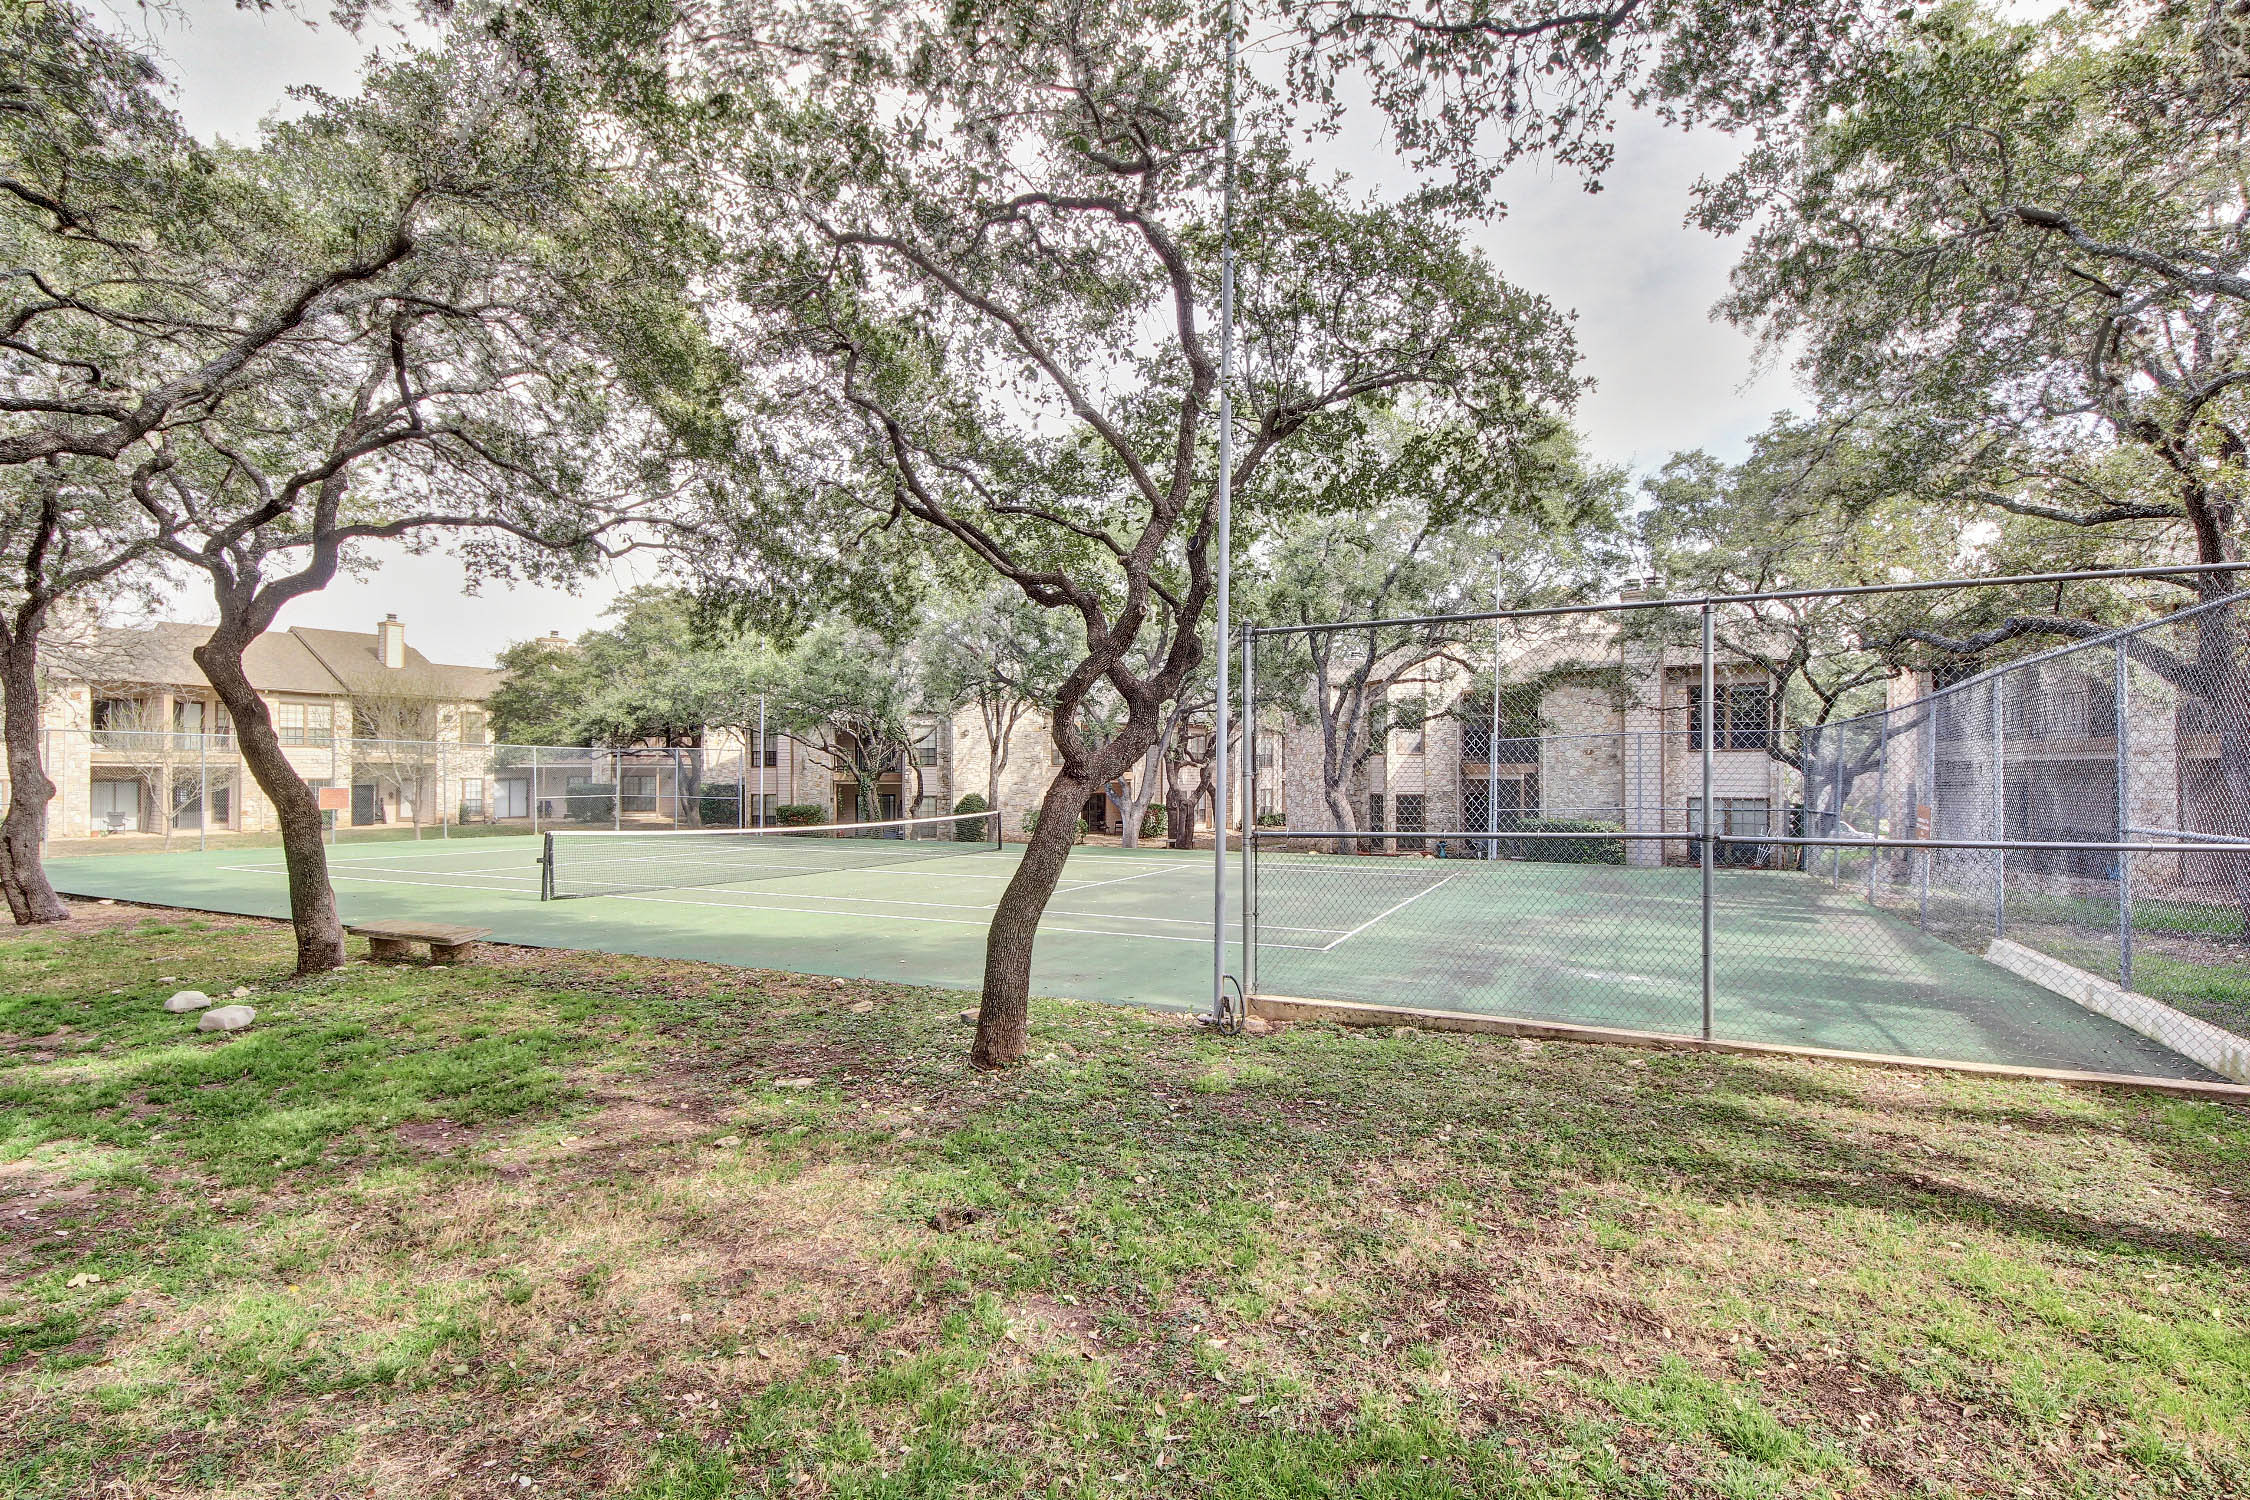 One of our wonderful amenities is our lighted tennis court